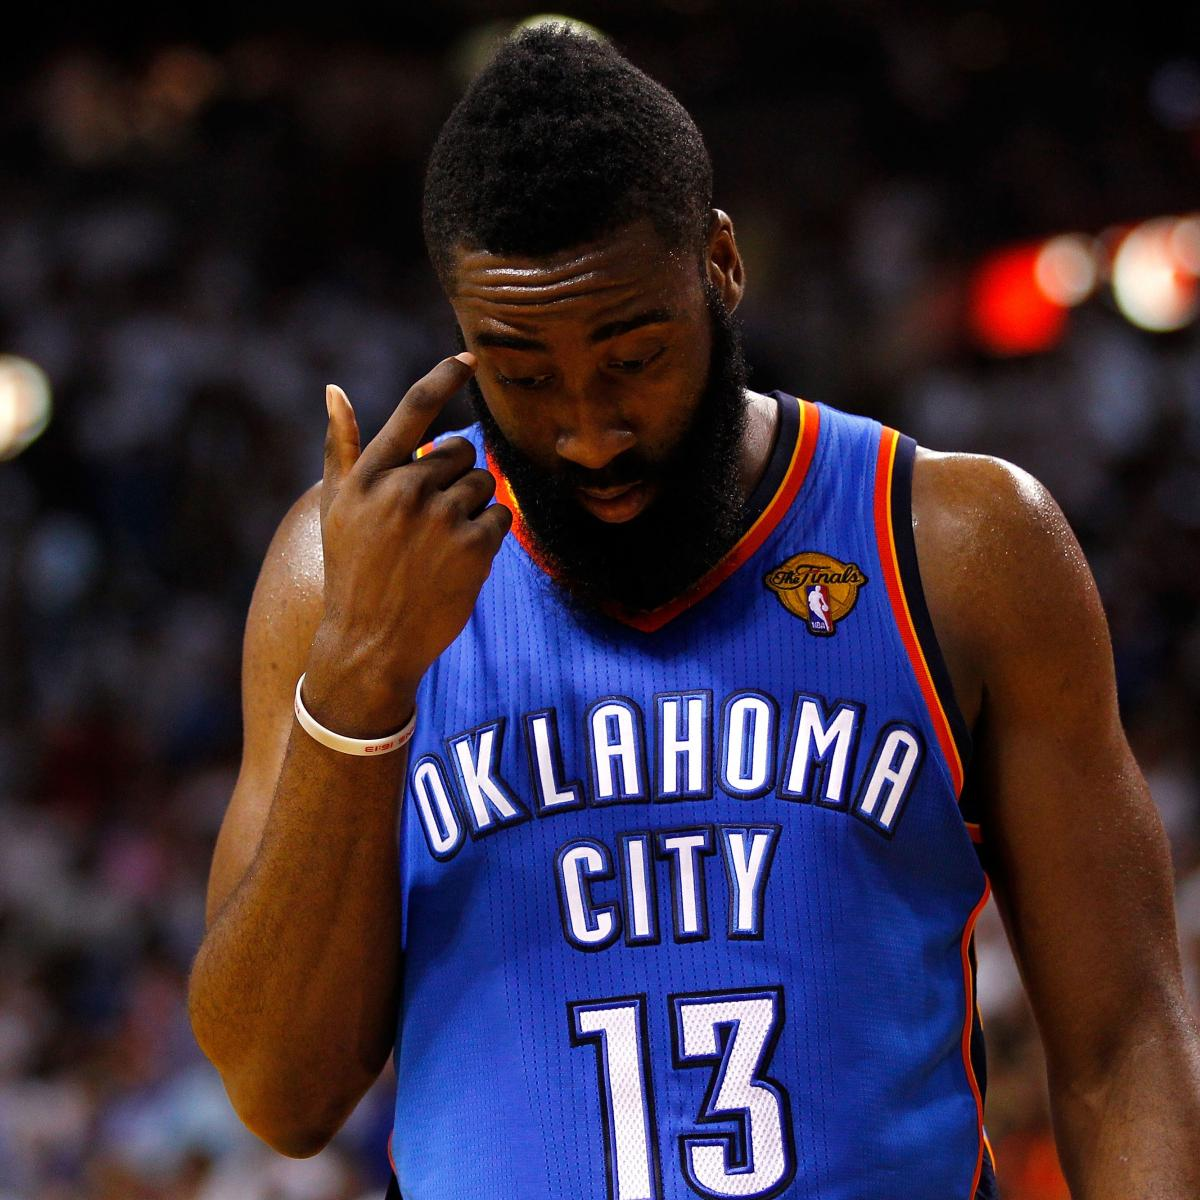 Nba2k19 James Harden: James Harden Disappearing Act Costs Thunder NBA Finals